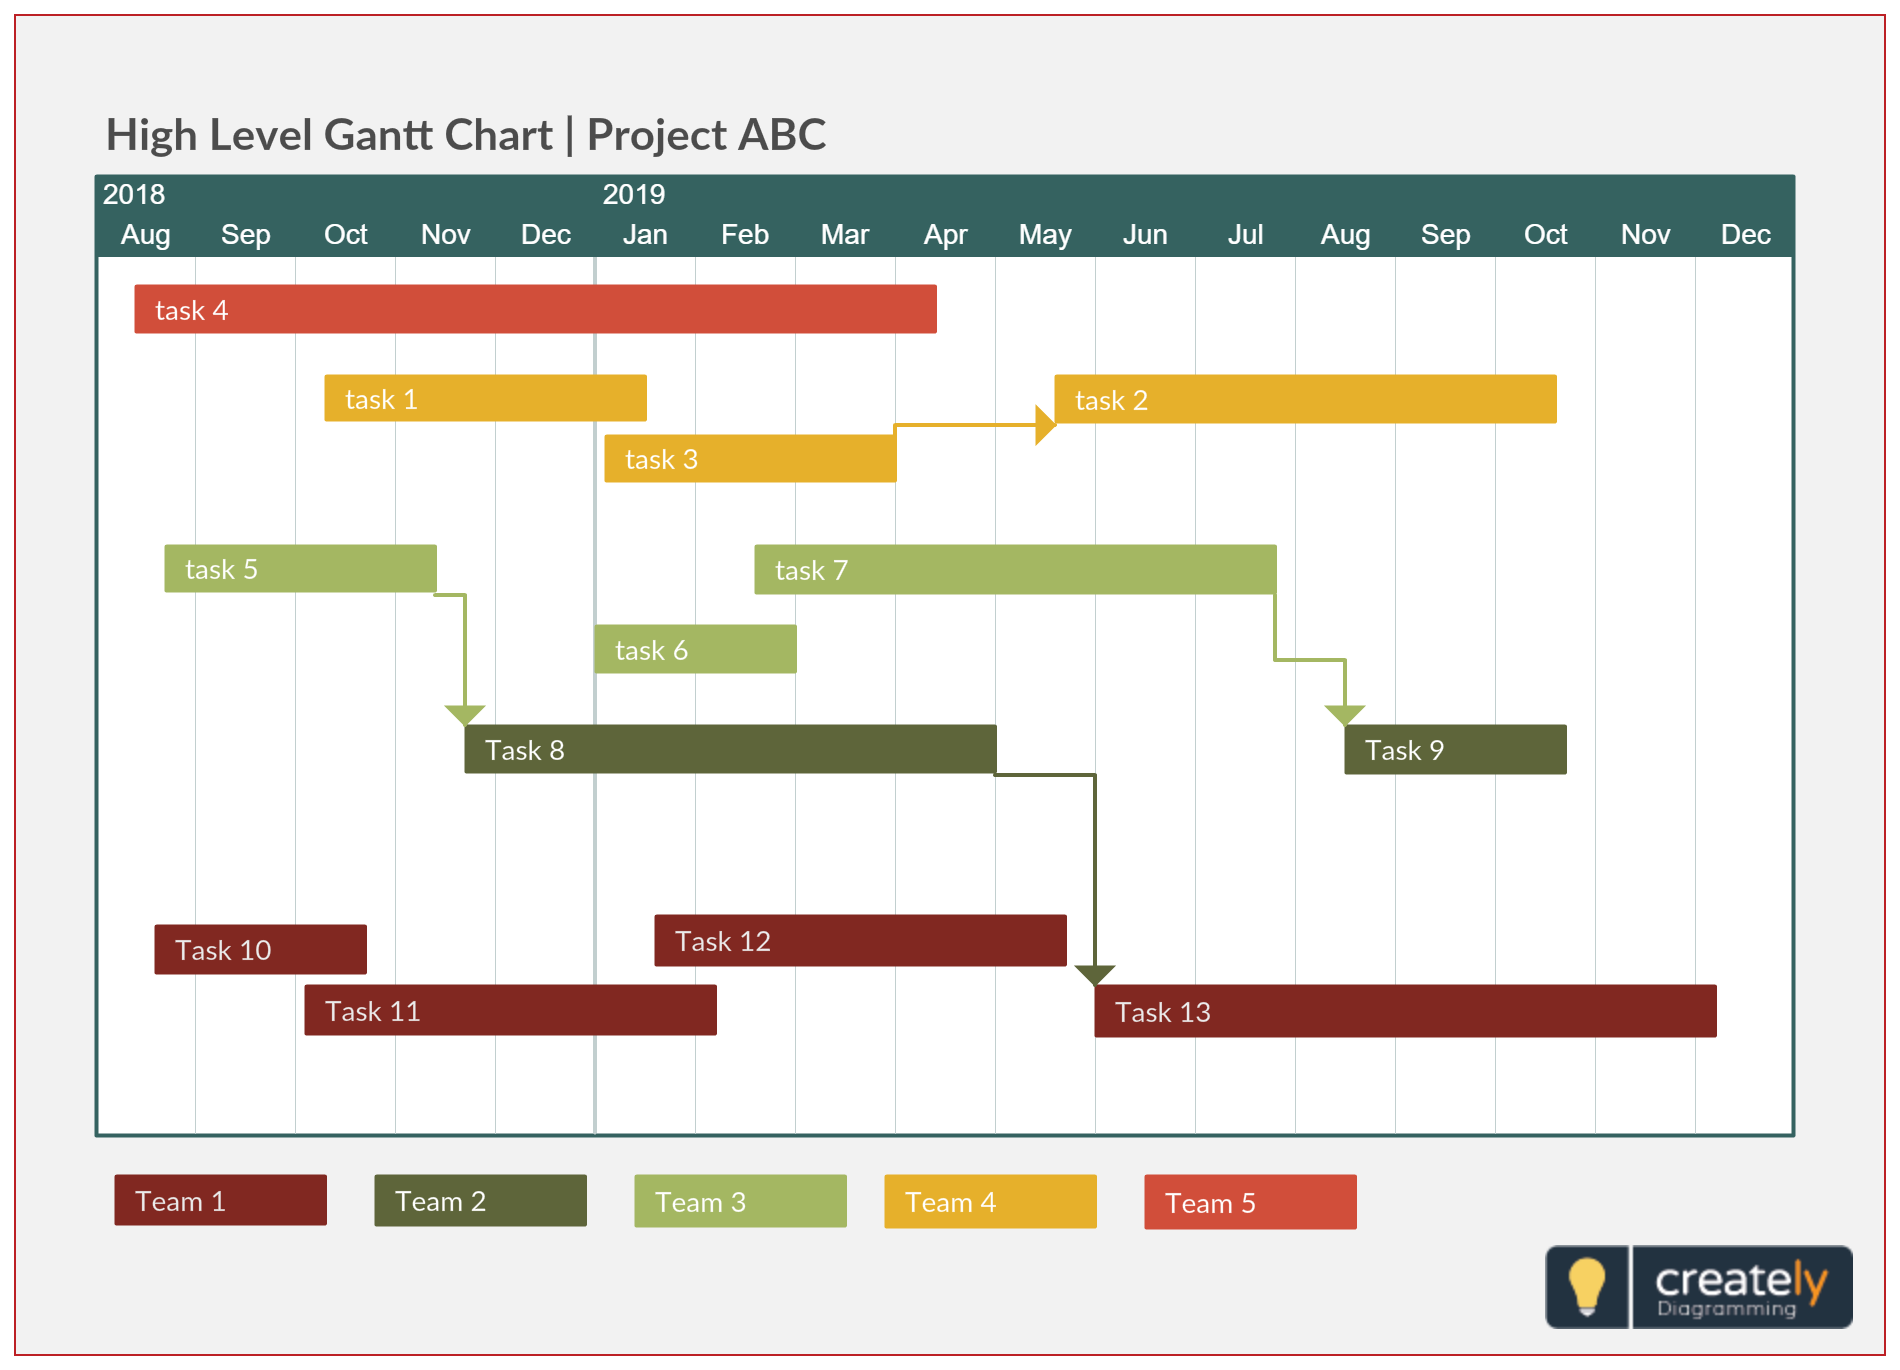 a simple gantt chart template providing a high level overview of a